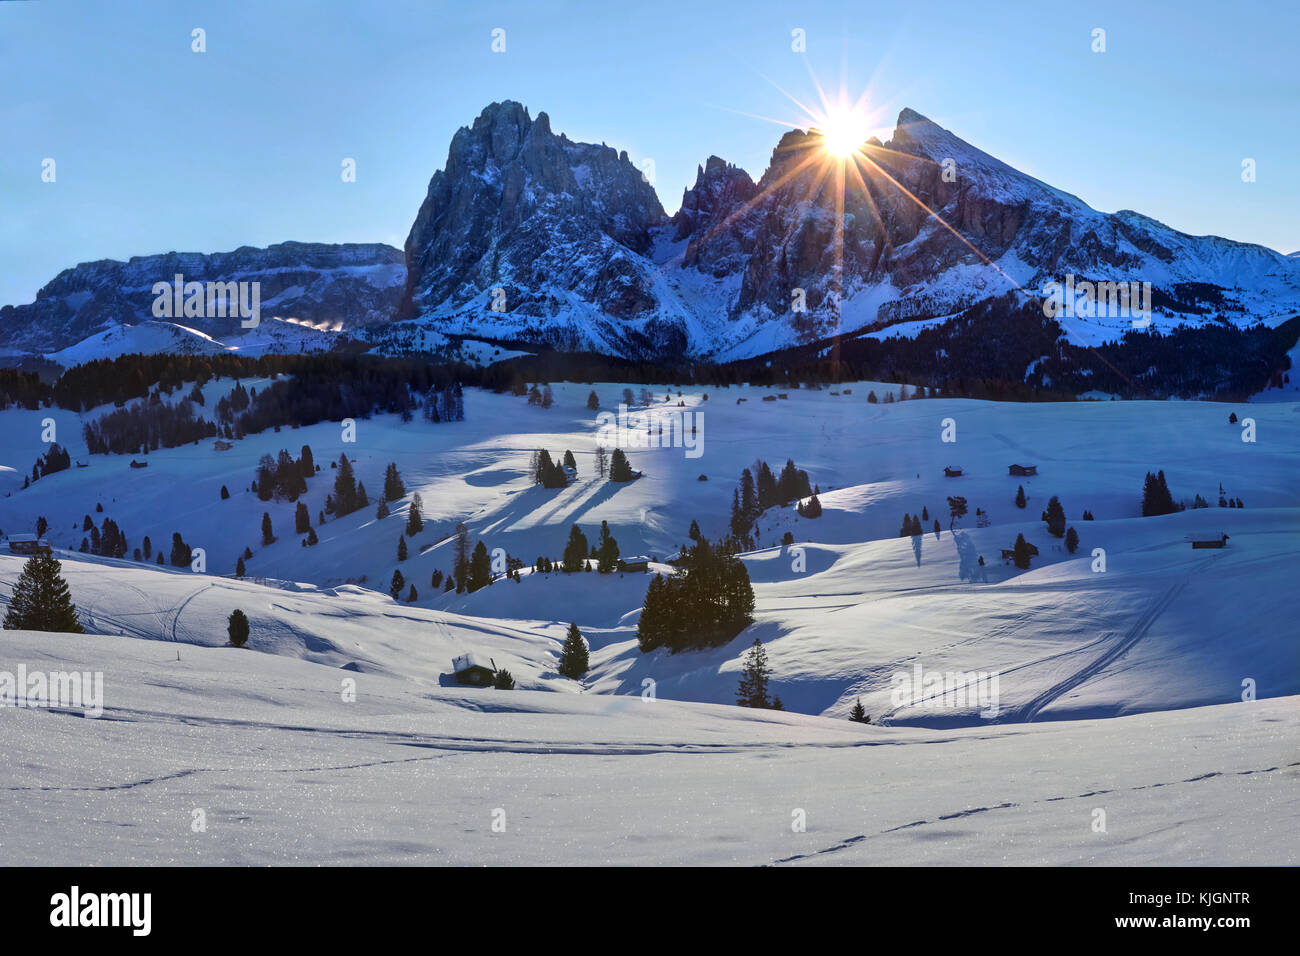 Winter sunrise over Alpe di Siusi with view on Sassolungo and Sassopiatto, Dolomites, Italy - Stock Image